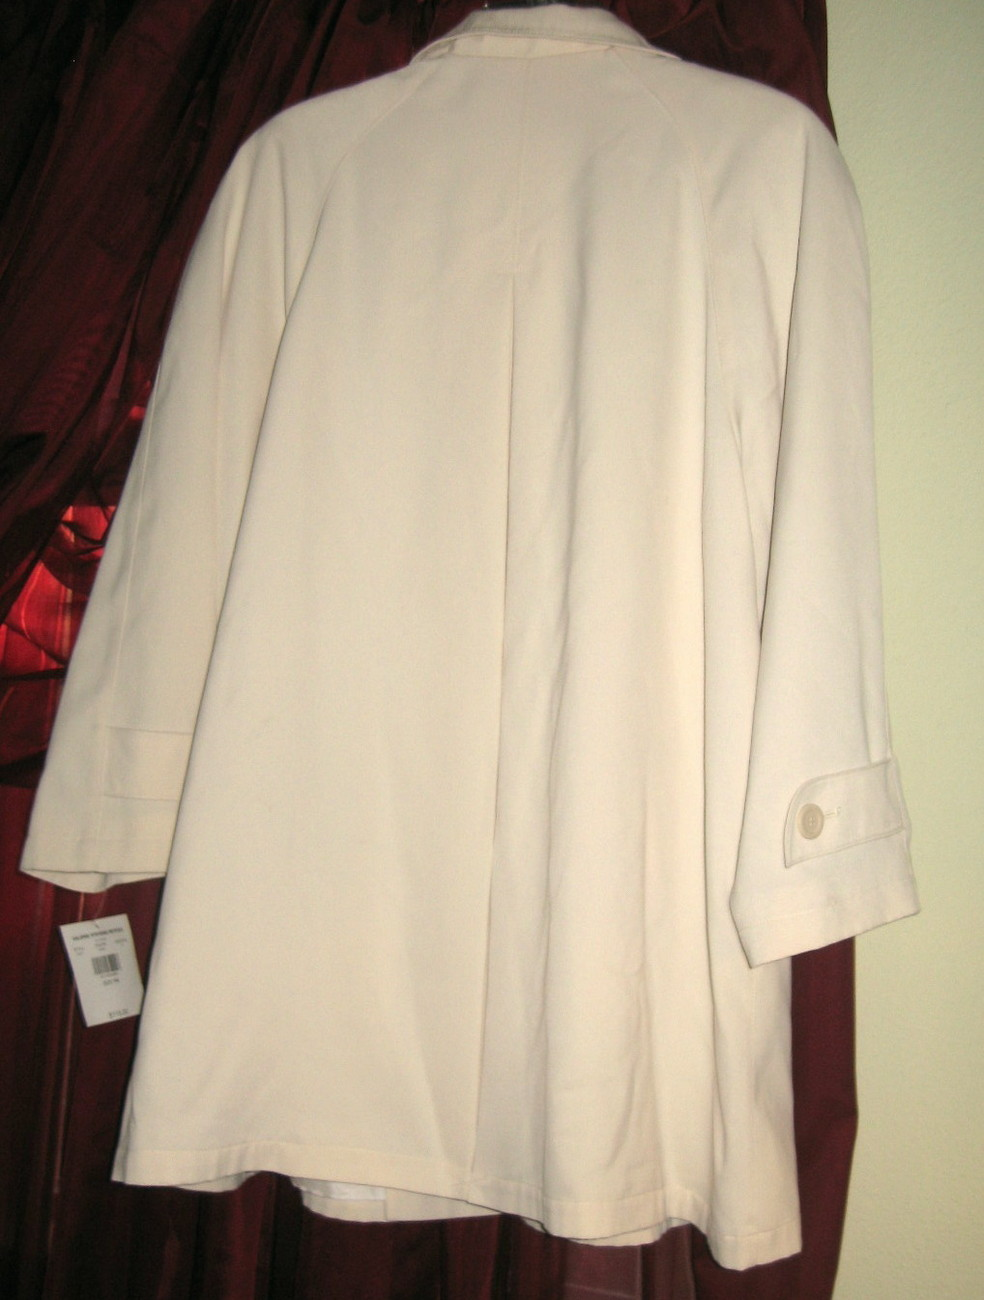 IVORY COAT BY VALERIE STEVENS PETITES, SIZE PM, BRAND NEW WITH TAGS WAS $115.